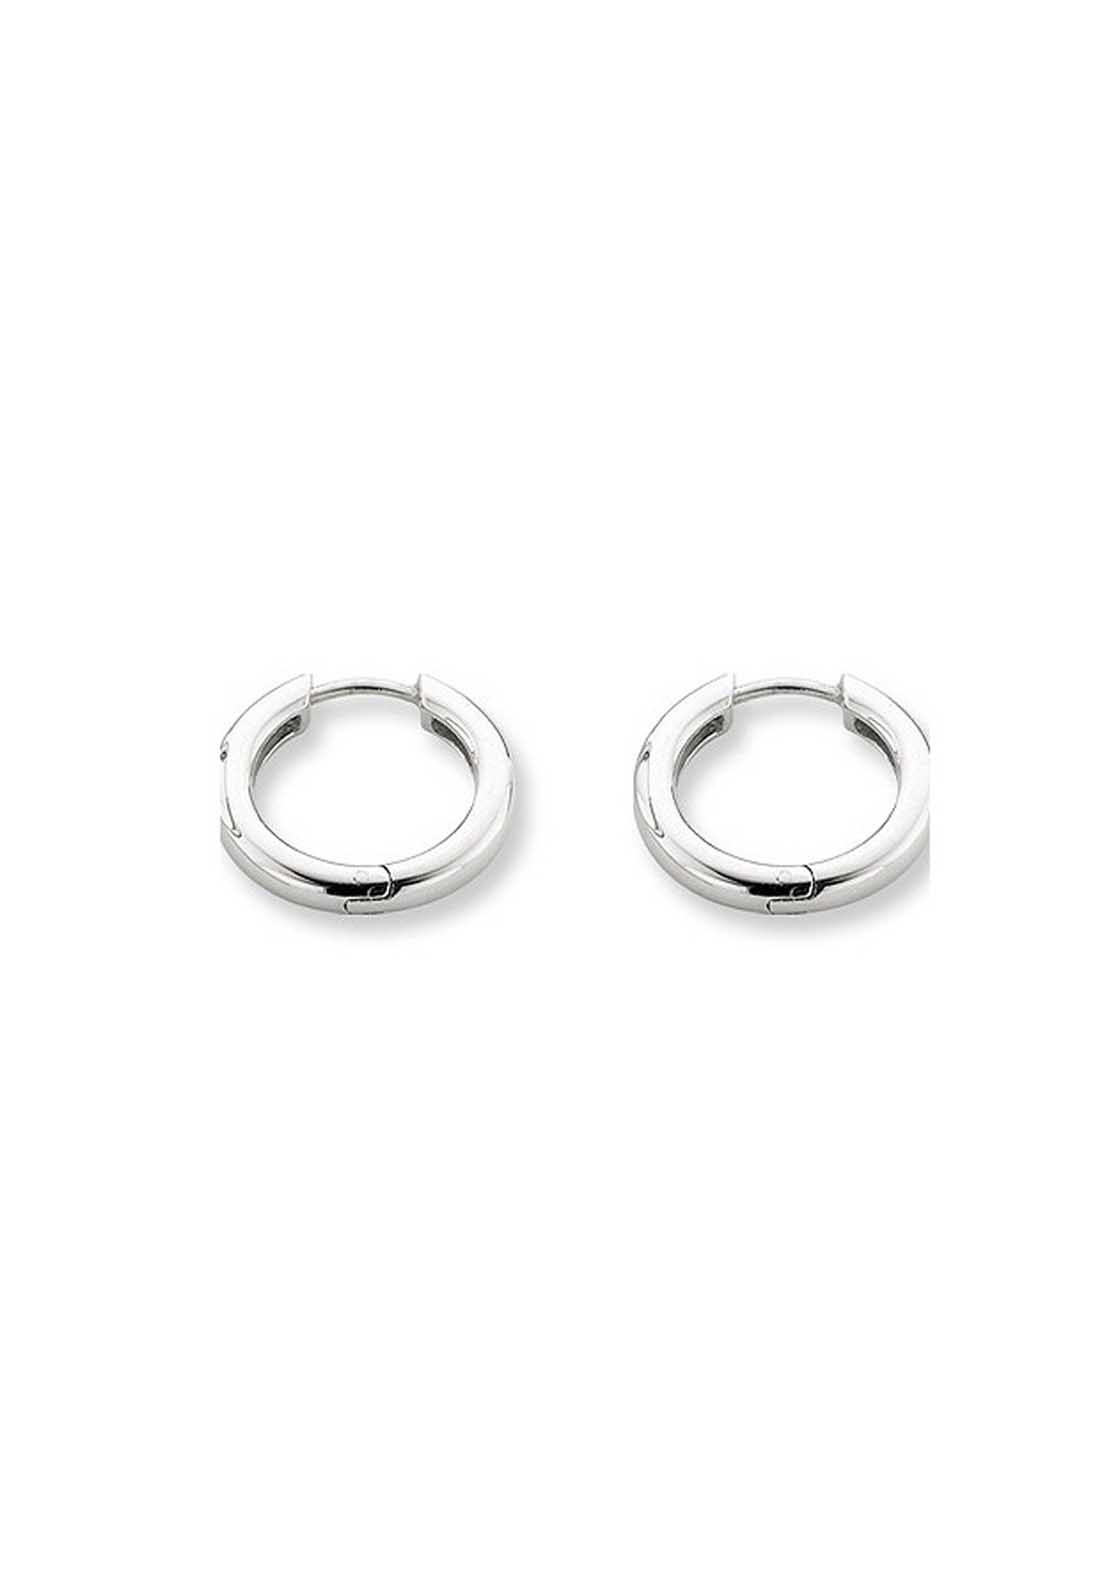 Ti Sento Sterling Silver Small Hoop Earrings